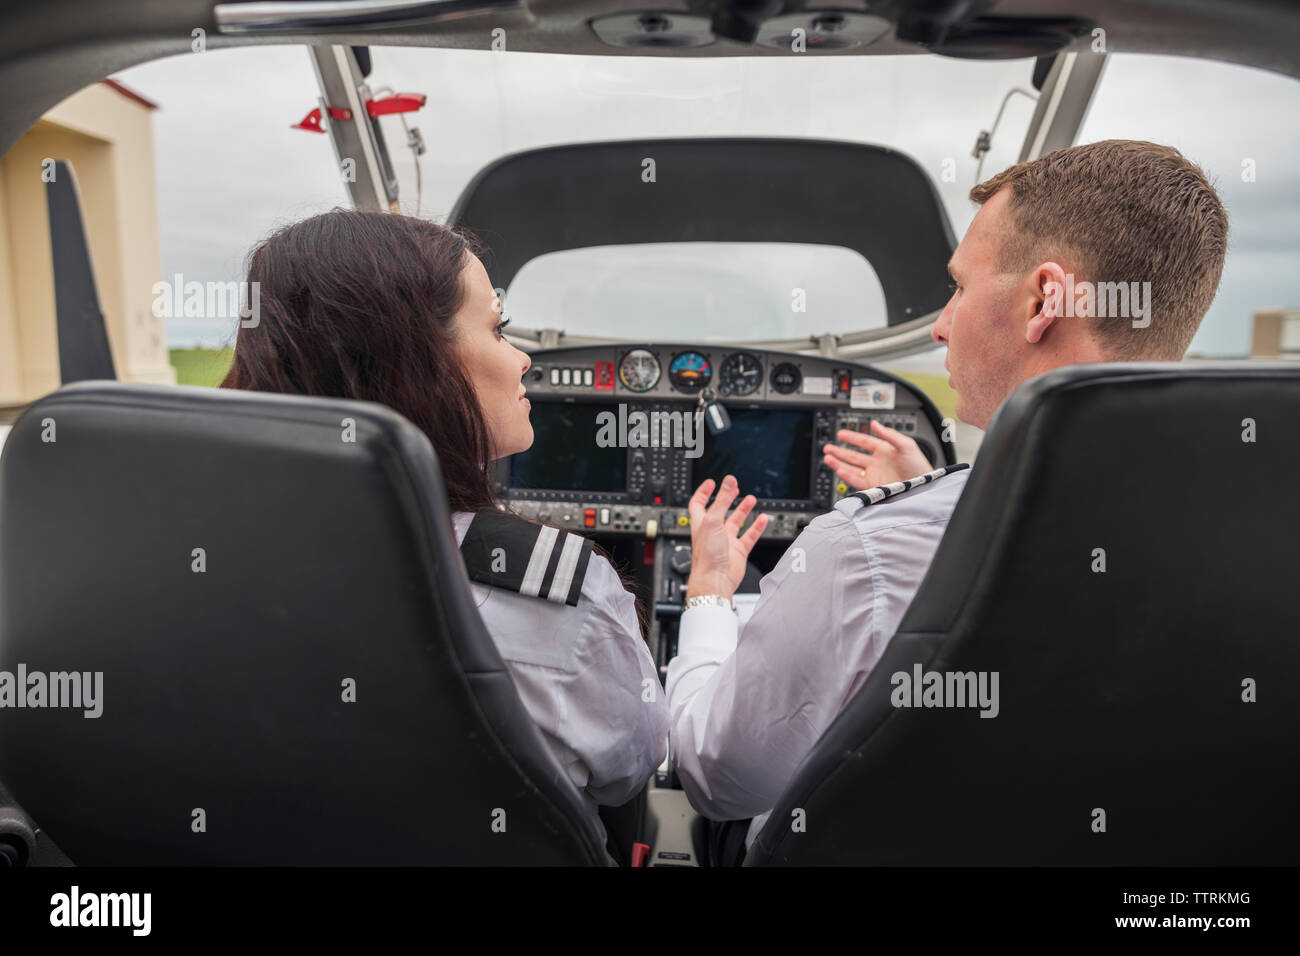 Rear view of male pilot giving training to female trainee while sitting in airplane at airport - Stock Image